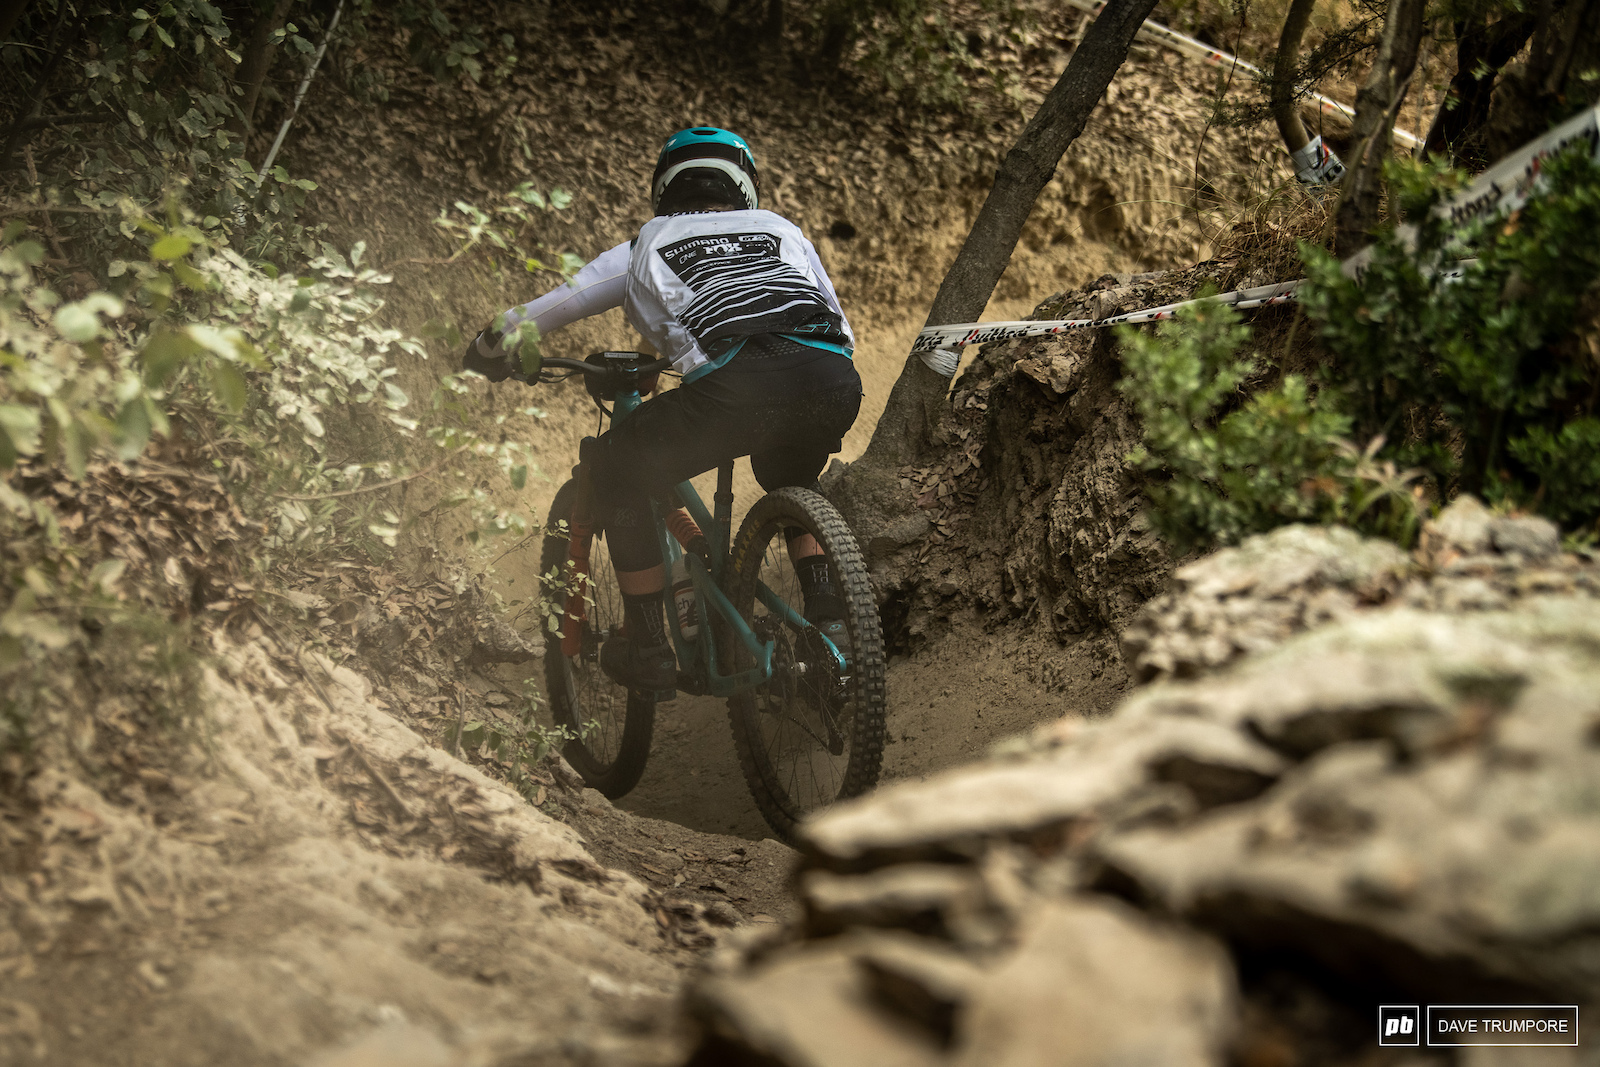 Kasper Woolley chasing the elusive first podium after being close the past two rounds